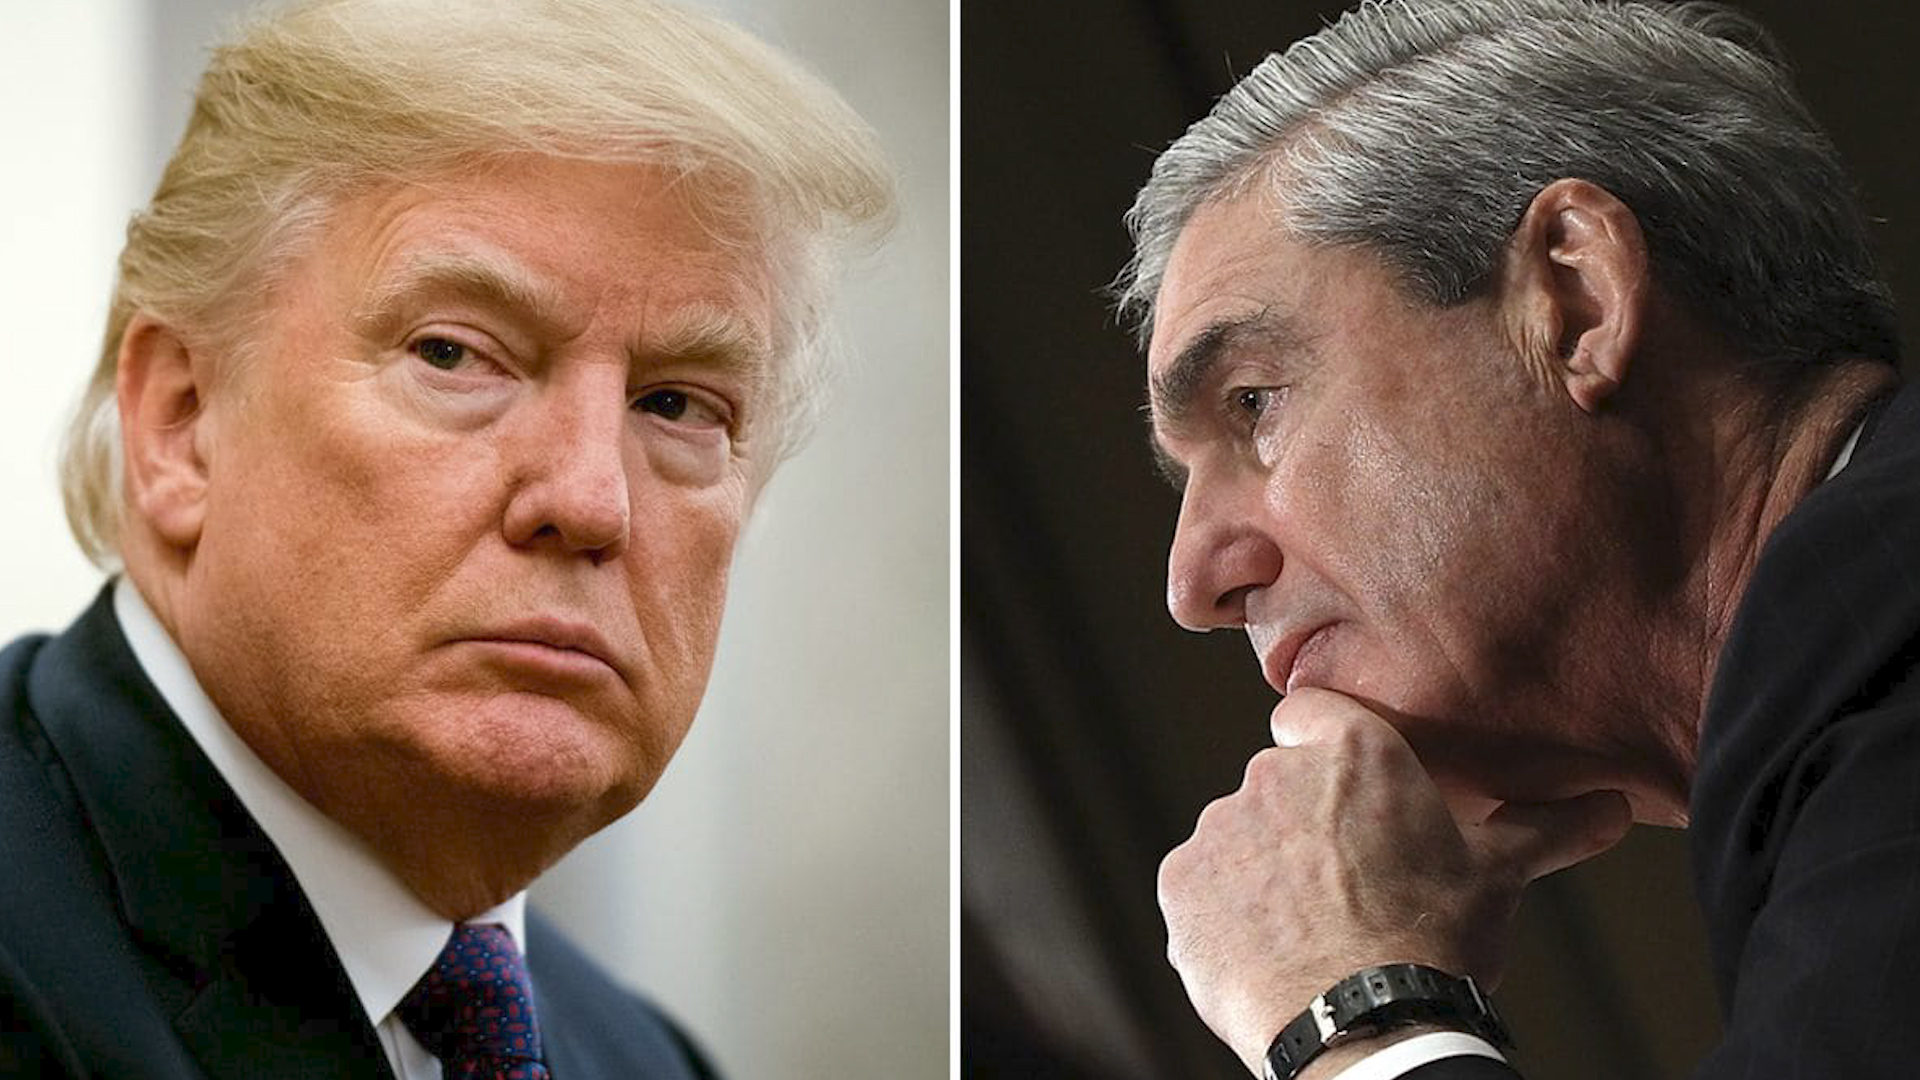 'I have no recollection': Trump turned to familiar refrain in response to Mueller questions